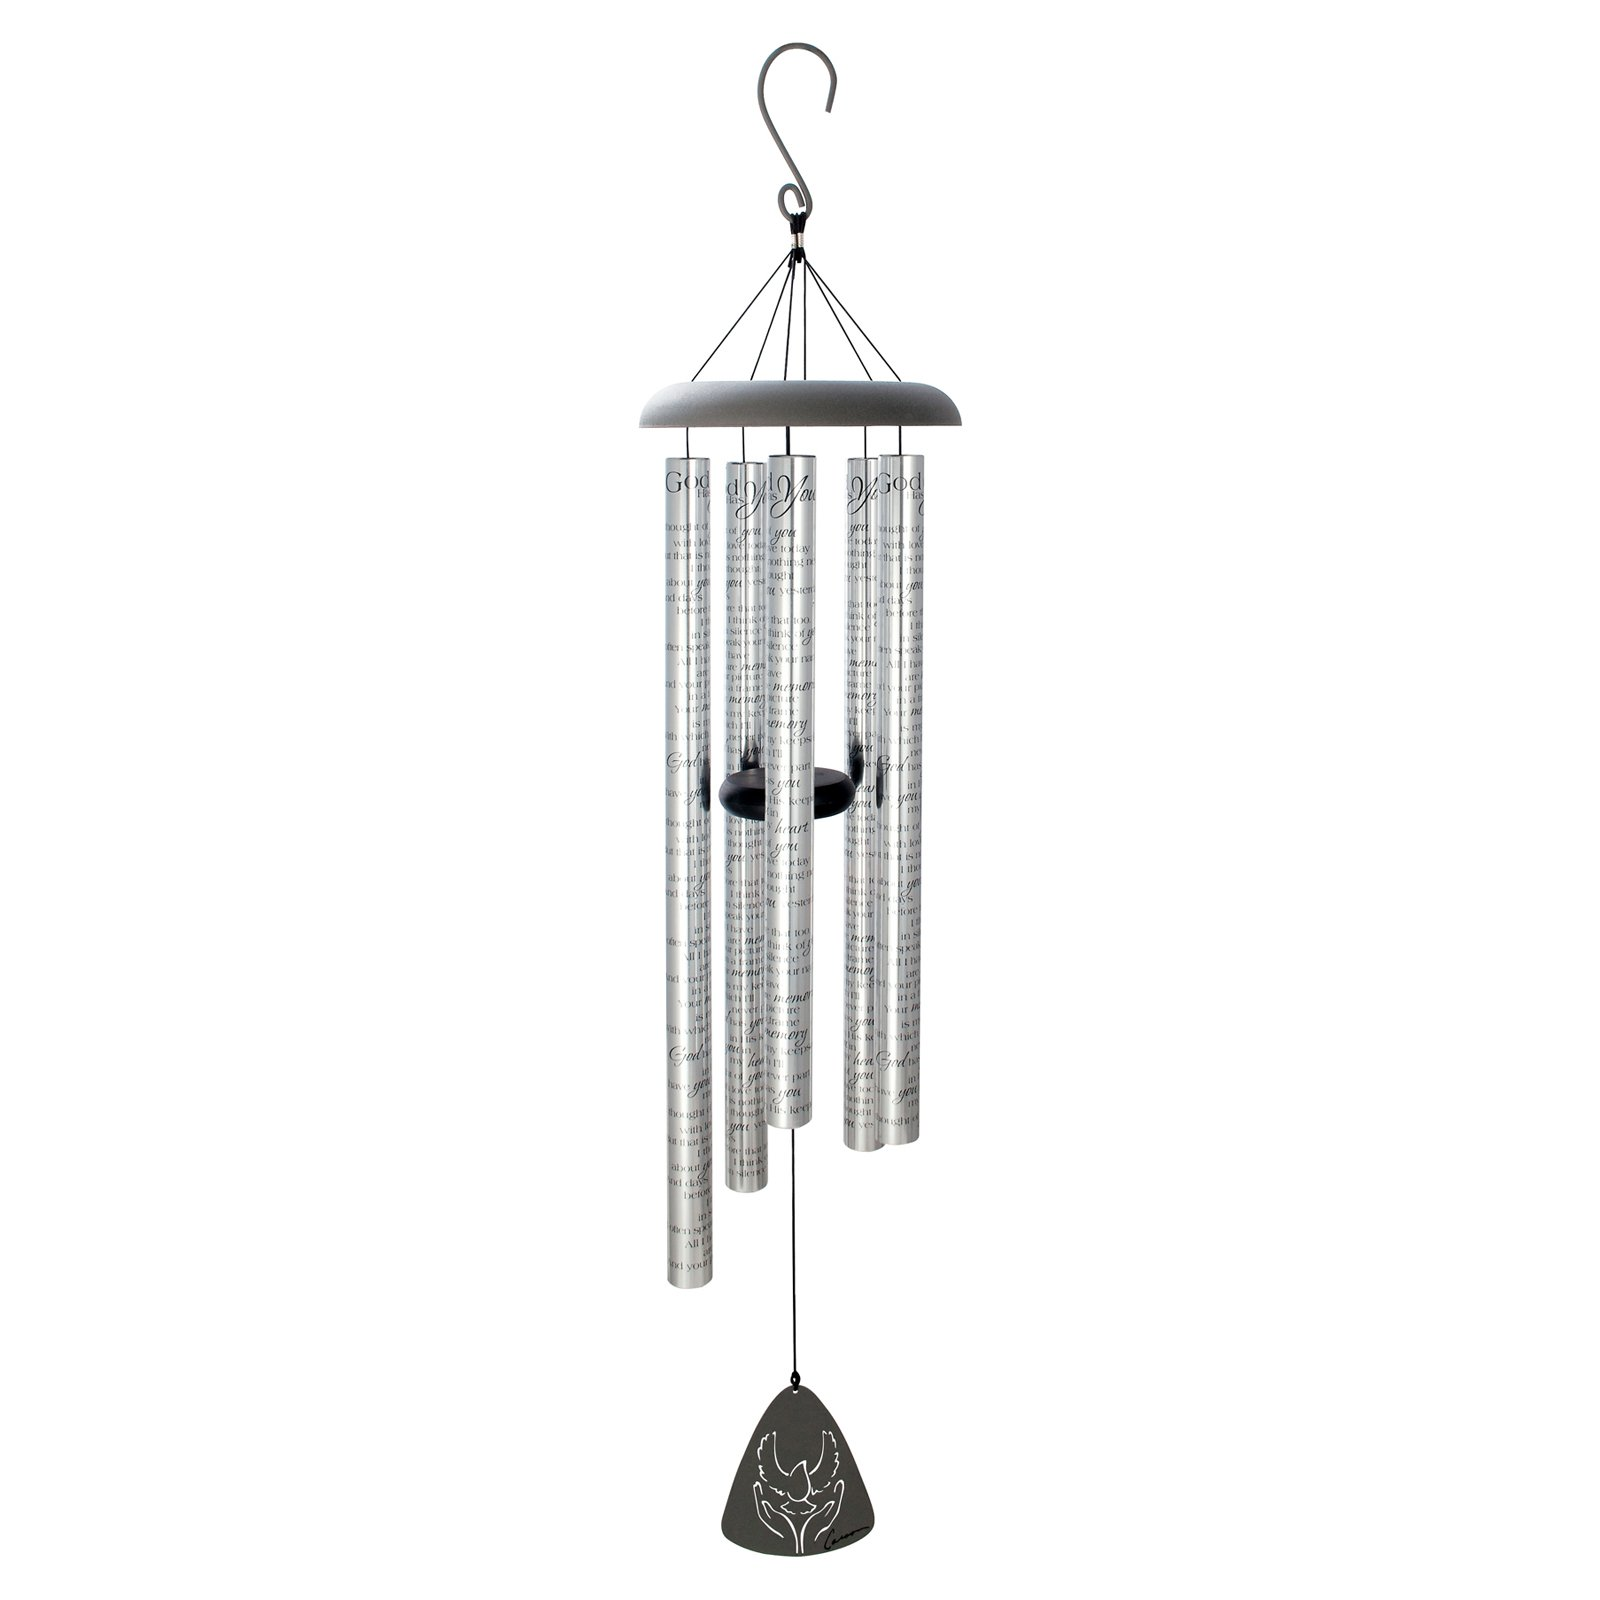 Carson 44 in. Sonnet Wind Chimes God Has You by Carson Home Accents